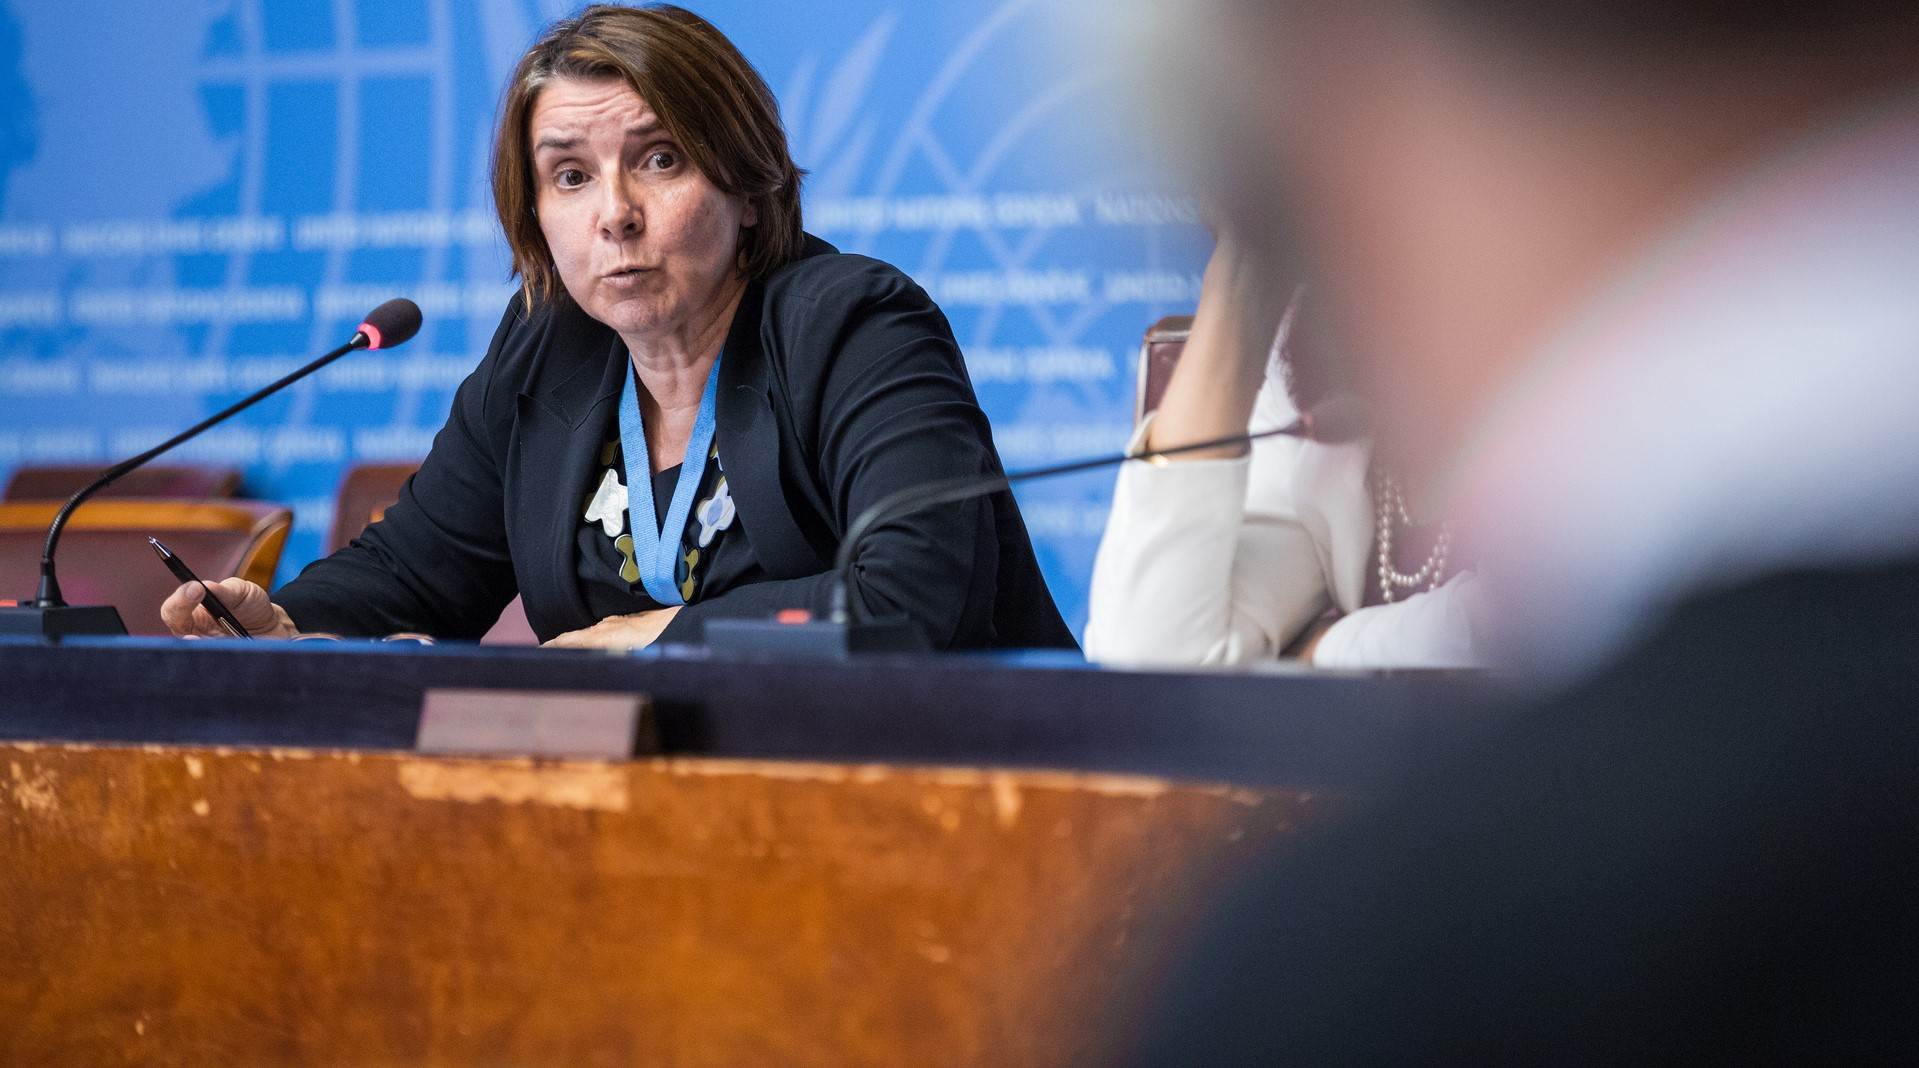 Catherine Marchi-Uhel, Head of the UN's International, Impartial and Independent Mechanism, September 2017 (Photo: UN Geneva/Flickr)